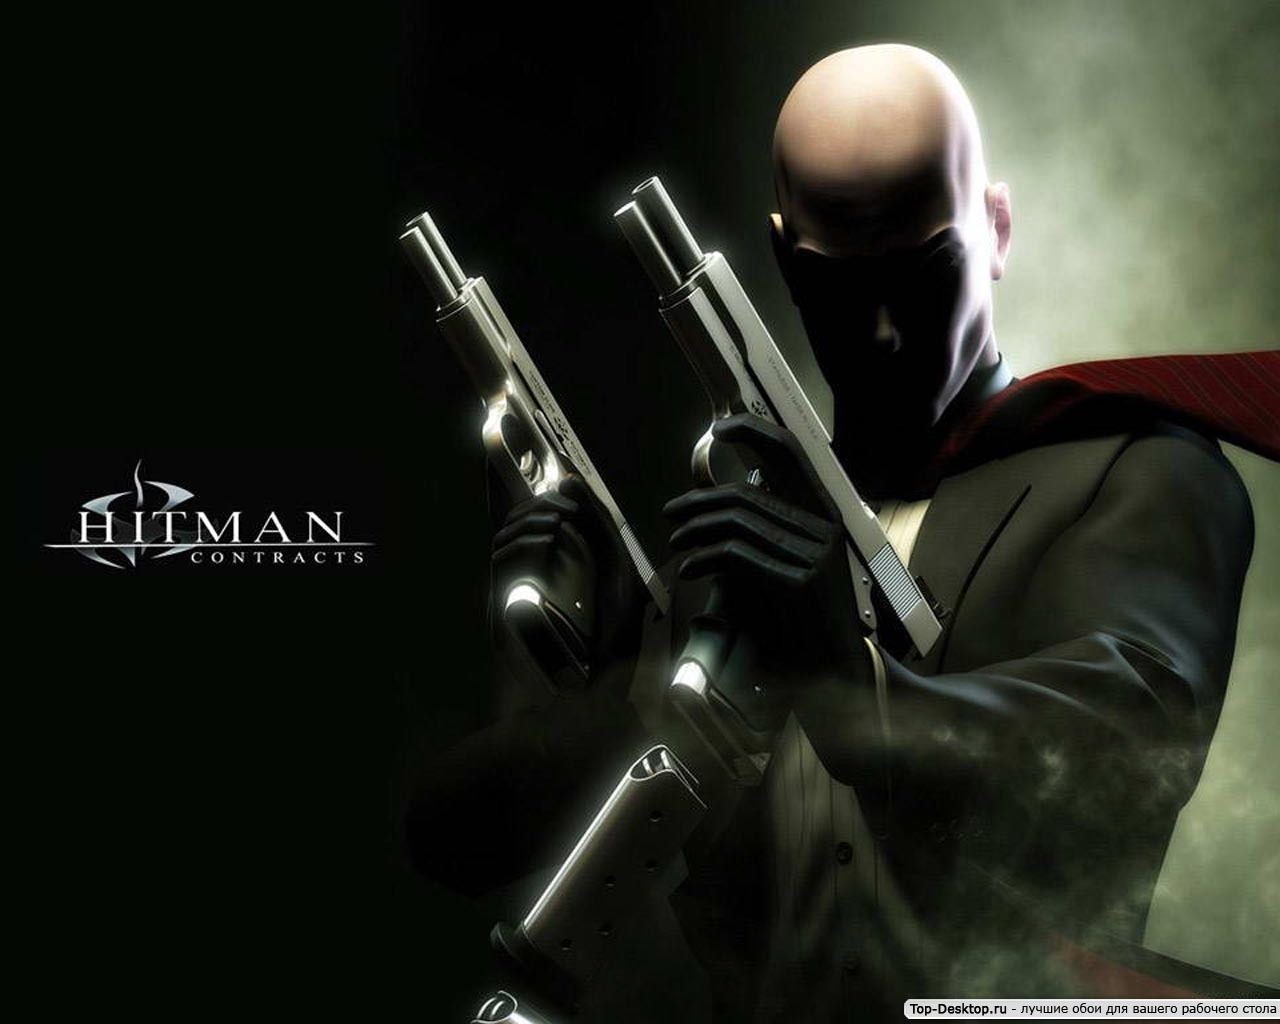 10991 download wallpaper Games, Men, Hitman screensavers and pictures for free